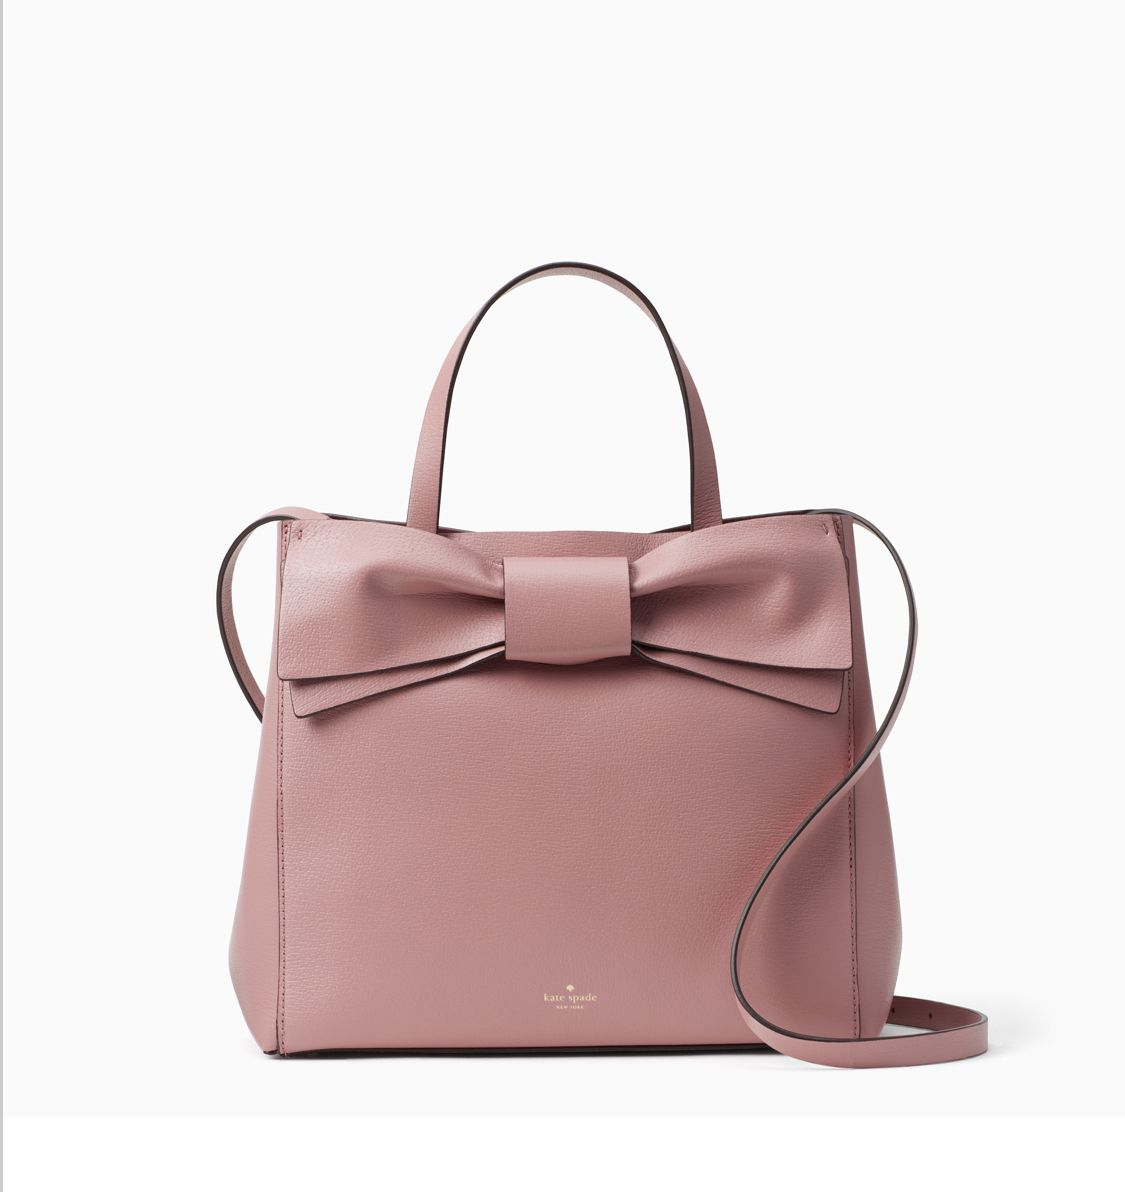 015ea2193c42 Kate Spade Olive Drive Brigette in Dusty Peony